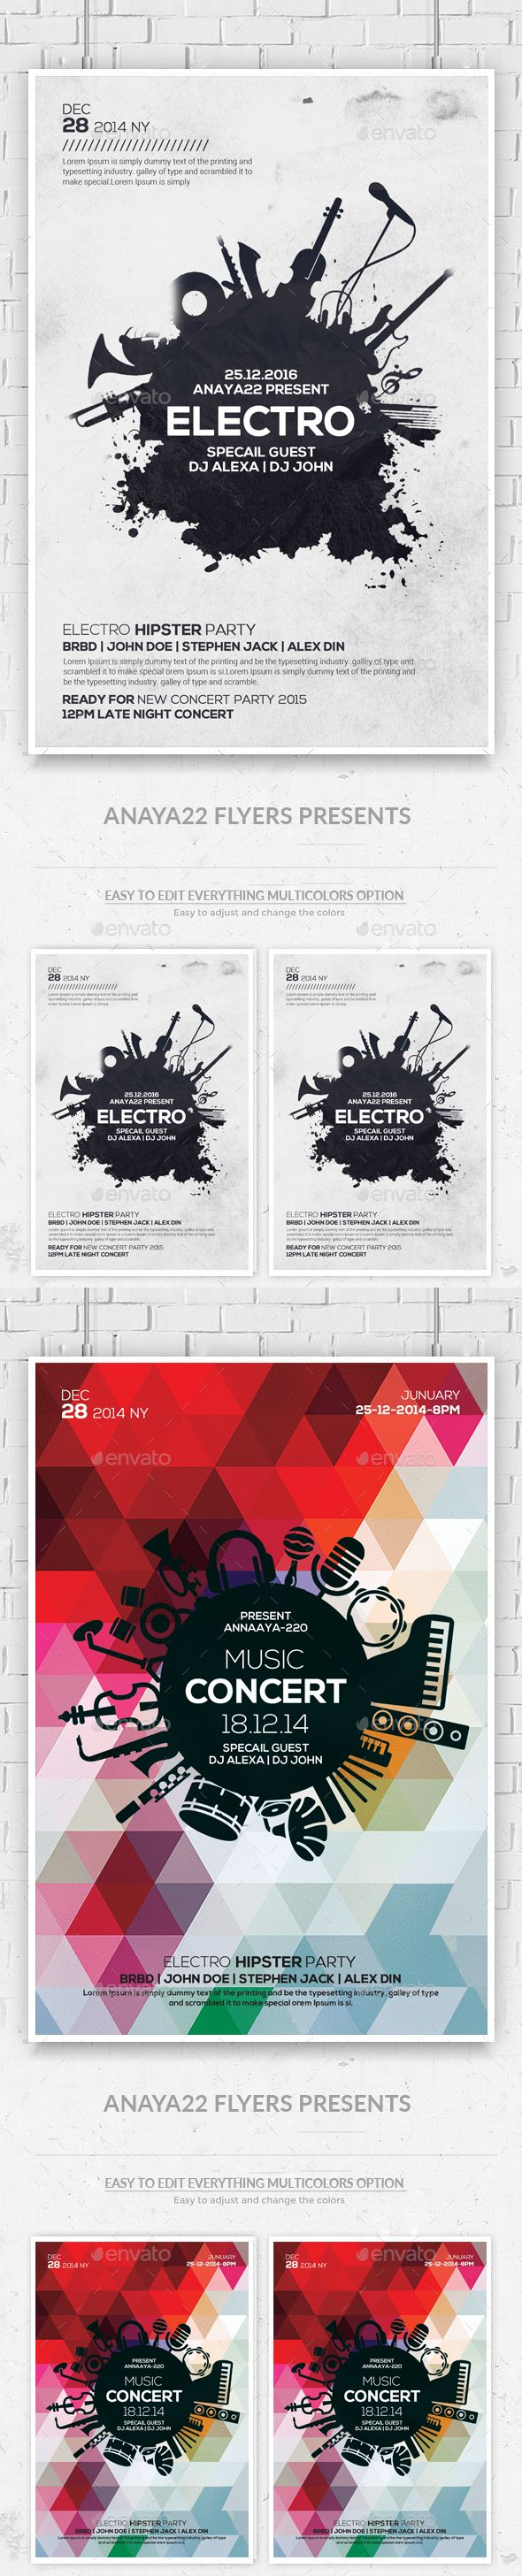 Electro Music Flyers Bundle — Photoshop PSD #club cmyk #night • Available here → https://graphicriver.net/item/electro-music-flyers-bundle/13487842?ref=pxcr